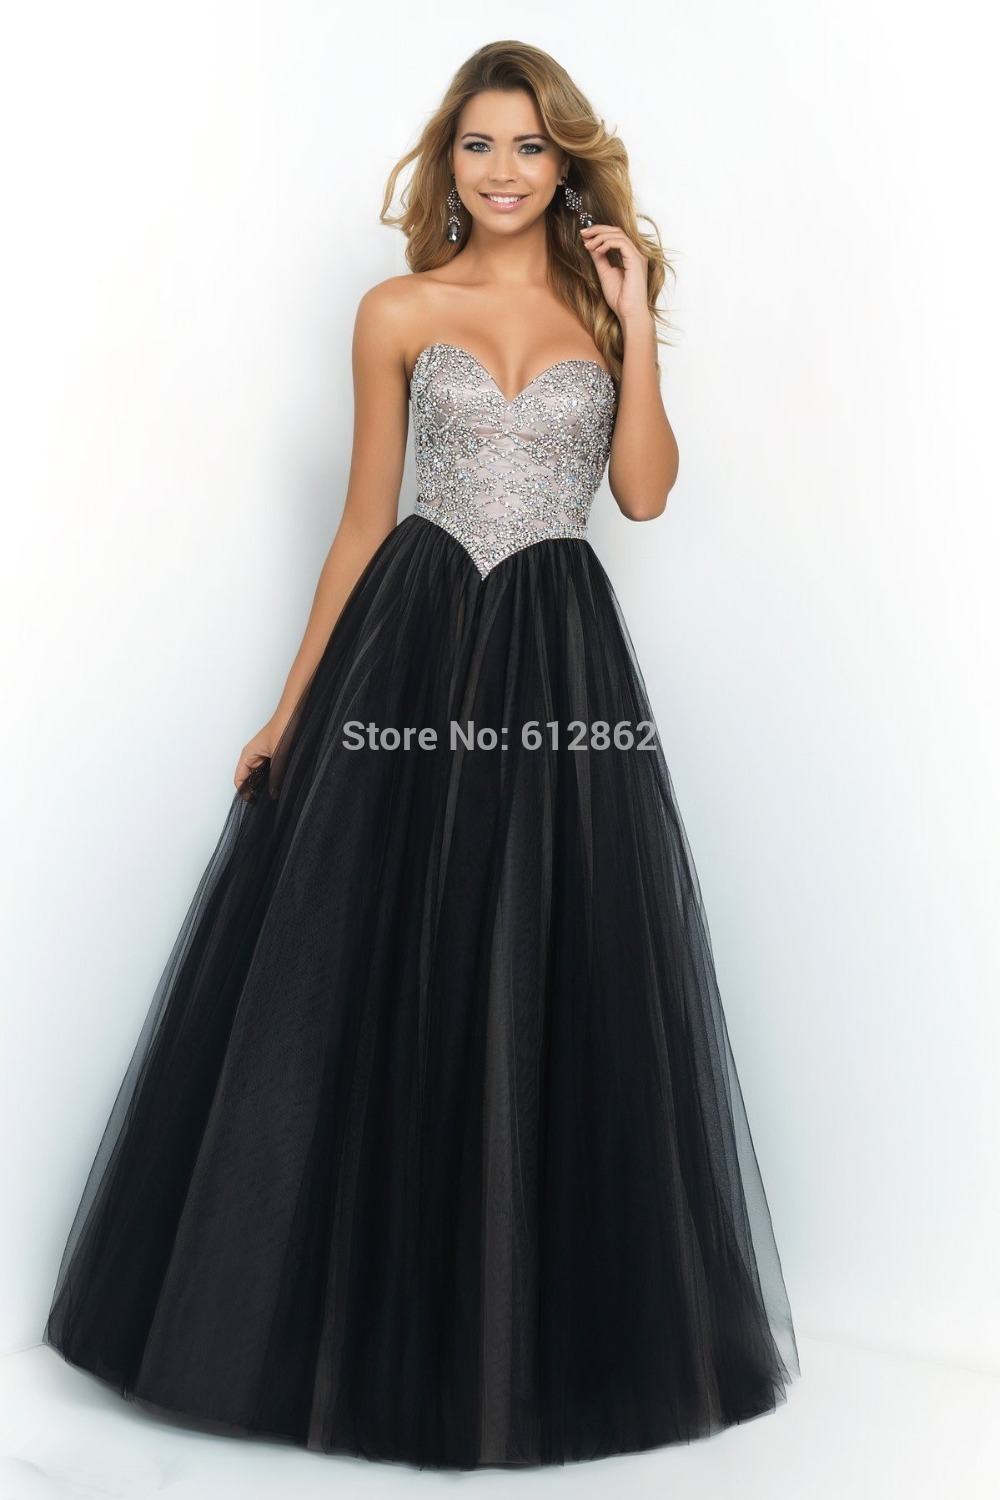 Popular Silver Strapless Prom Dress-Buy Cheap Silver Strapless ...